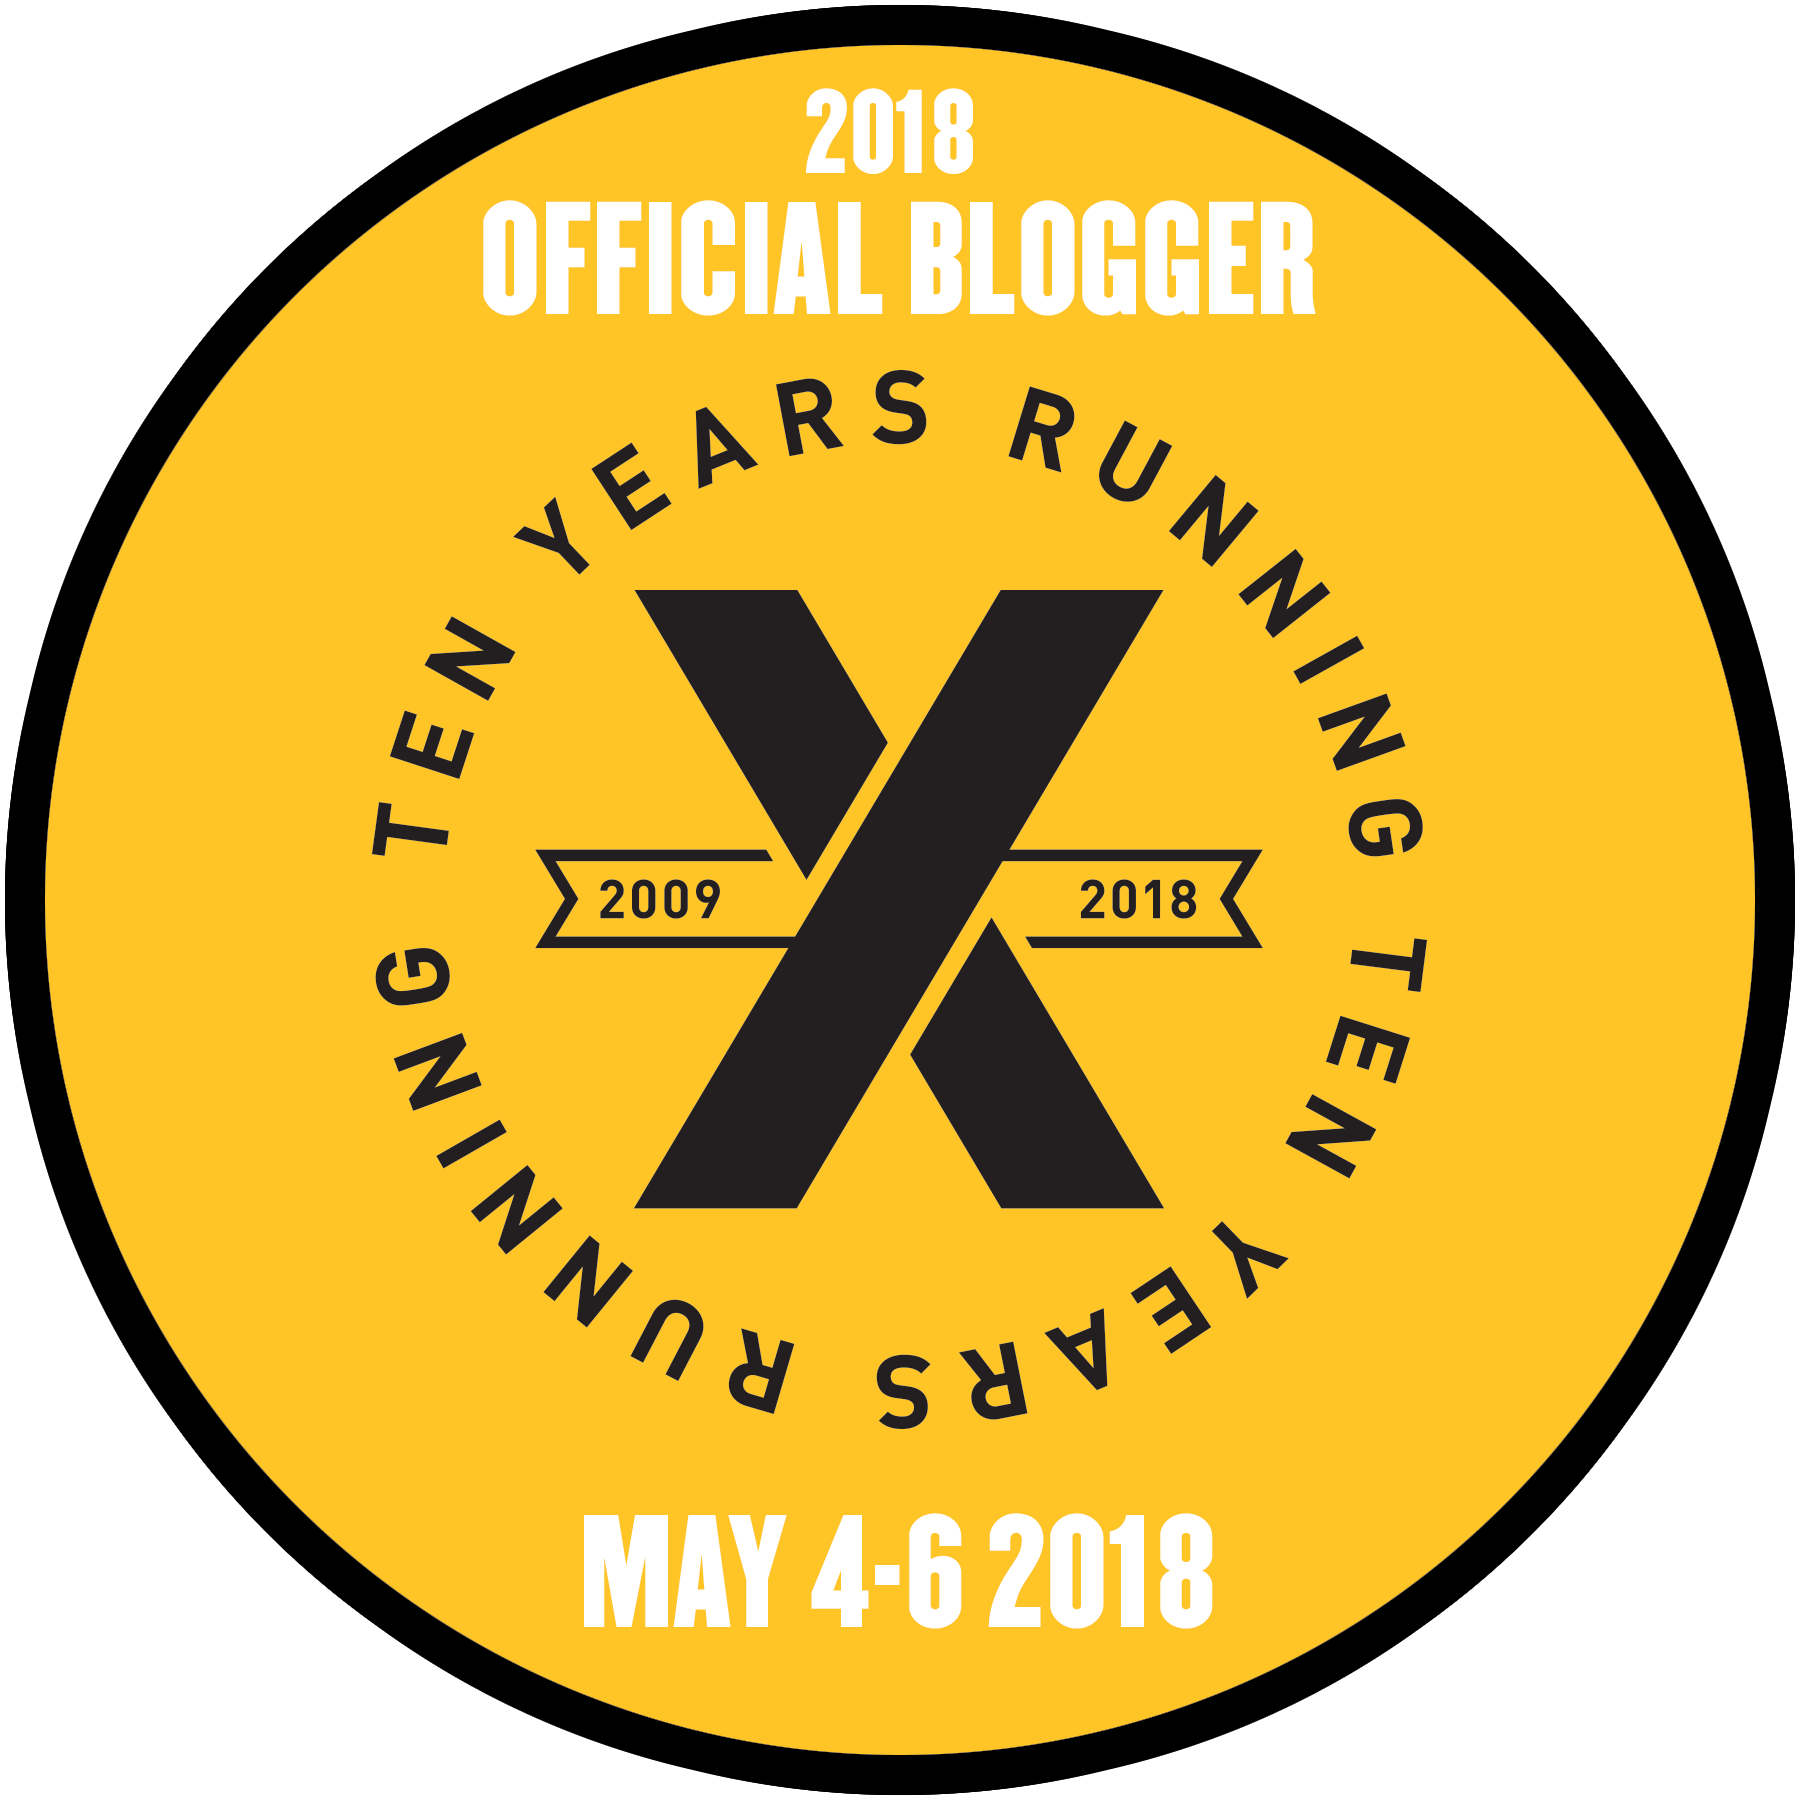 2018 Pittsburgh Marathon Official Blogger